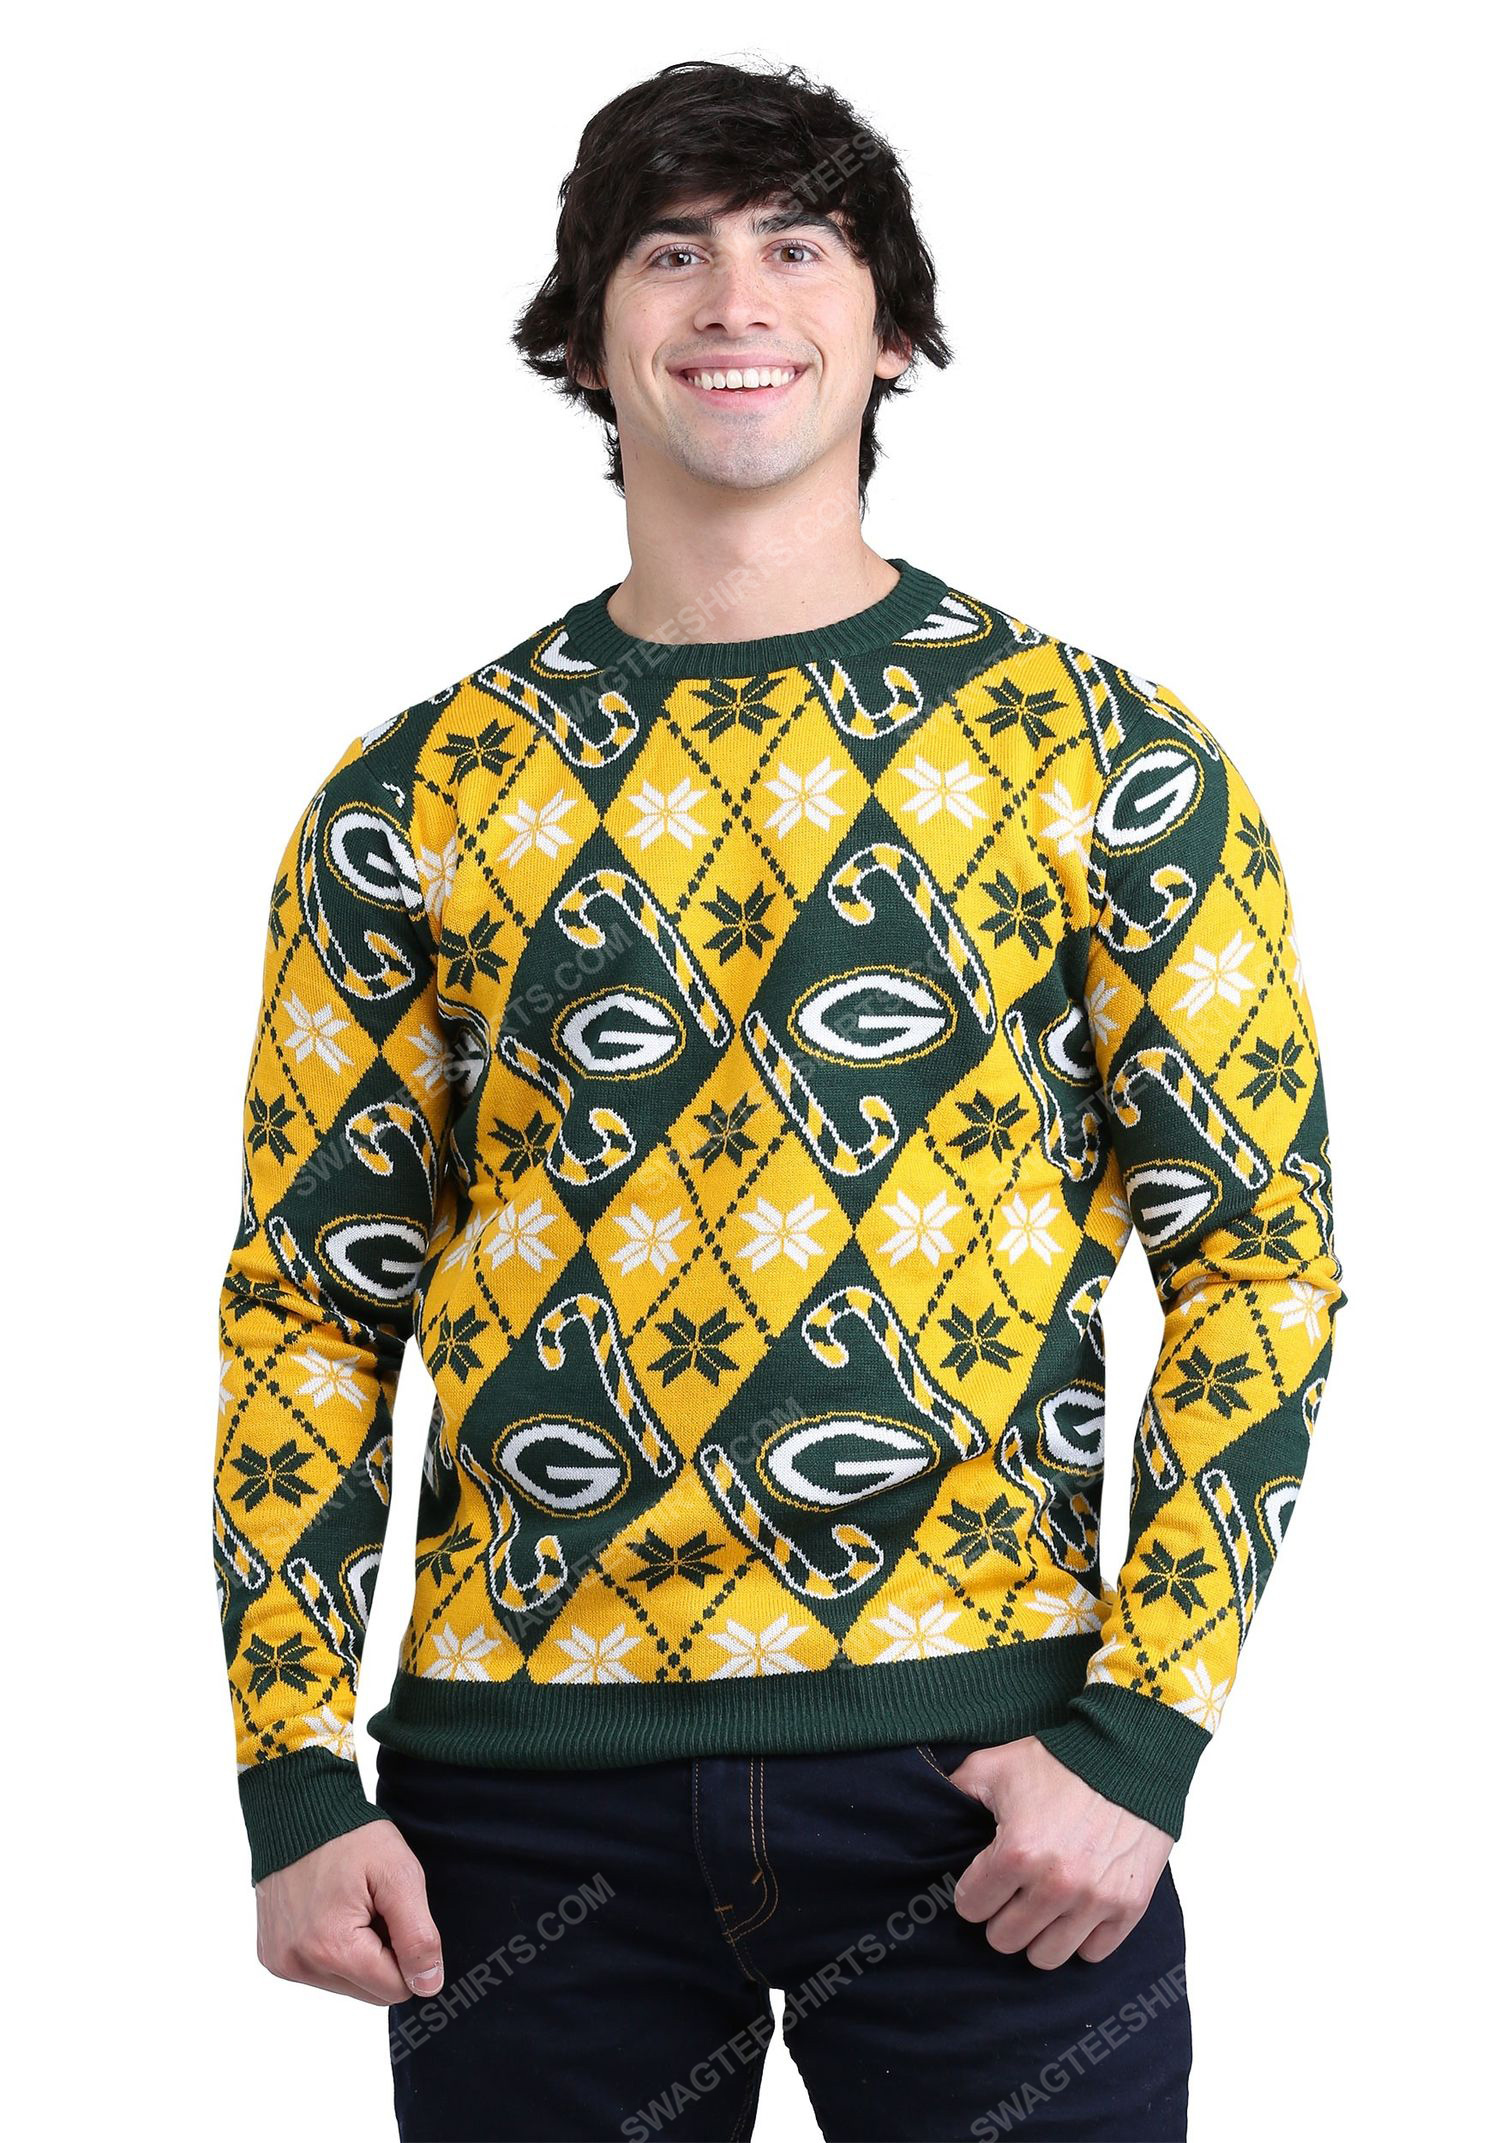 Green bay packers candy cane full print ugly christmas sweater 2 - Copy